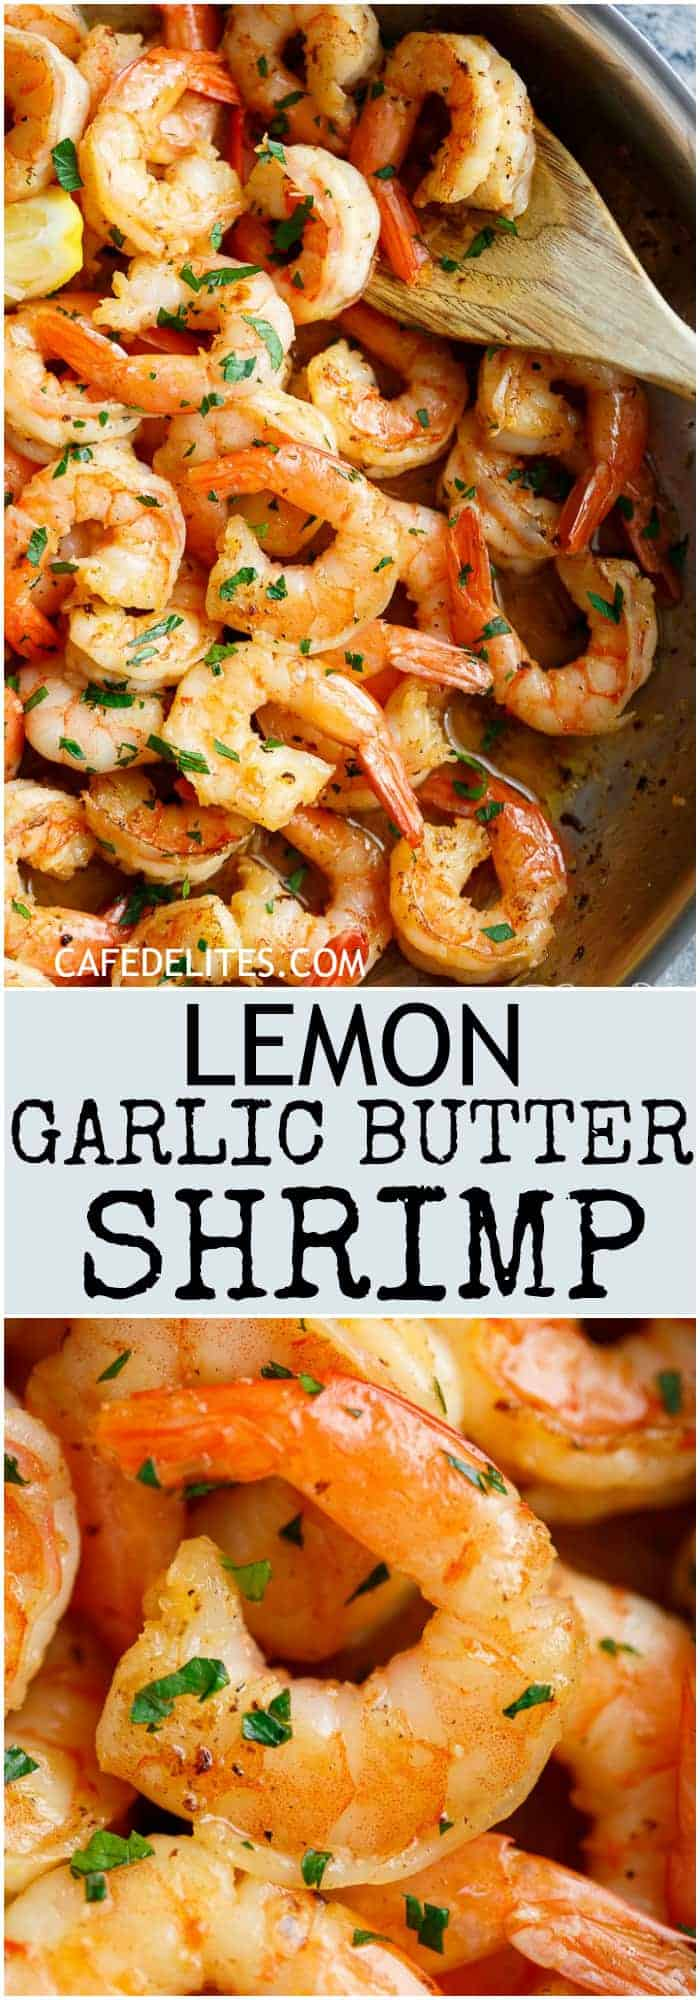 Lemon Garlic Butter Shrimp is the most easiest and flavour packed shrimp! With the best flavour combination and ready in under 15 minutes, this easy to throw together meal can be served over anything! | https://cafedelites.com